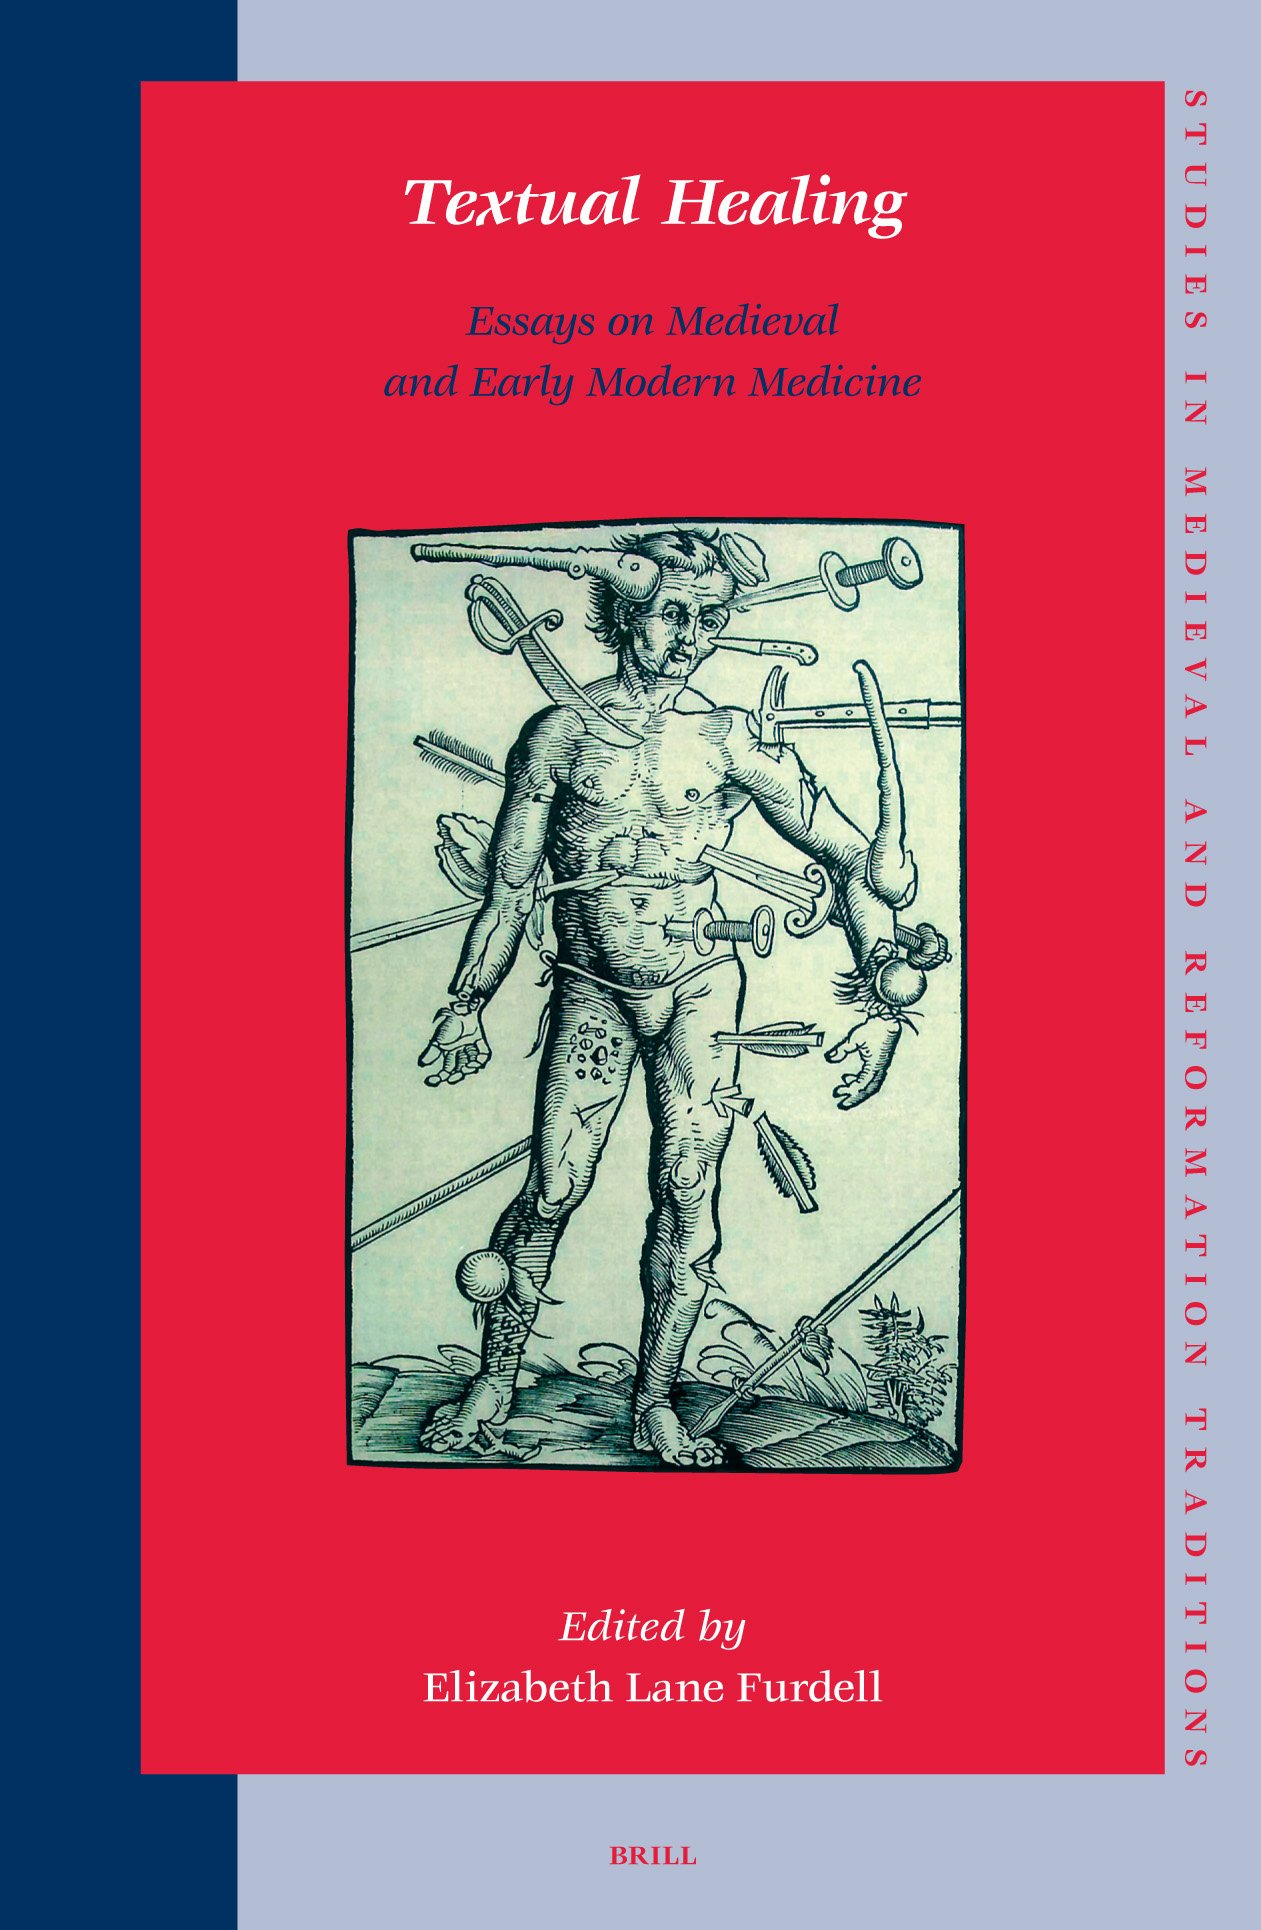 Textual Healing: Essays on Medieval and Early Modern